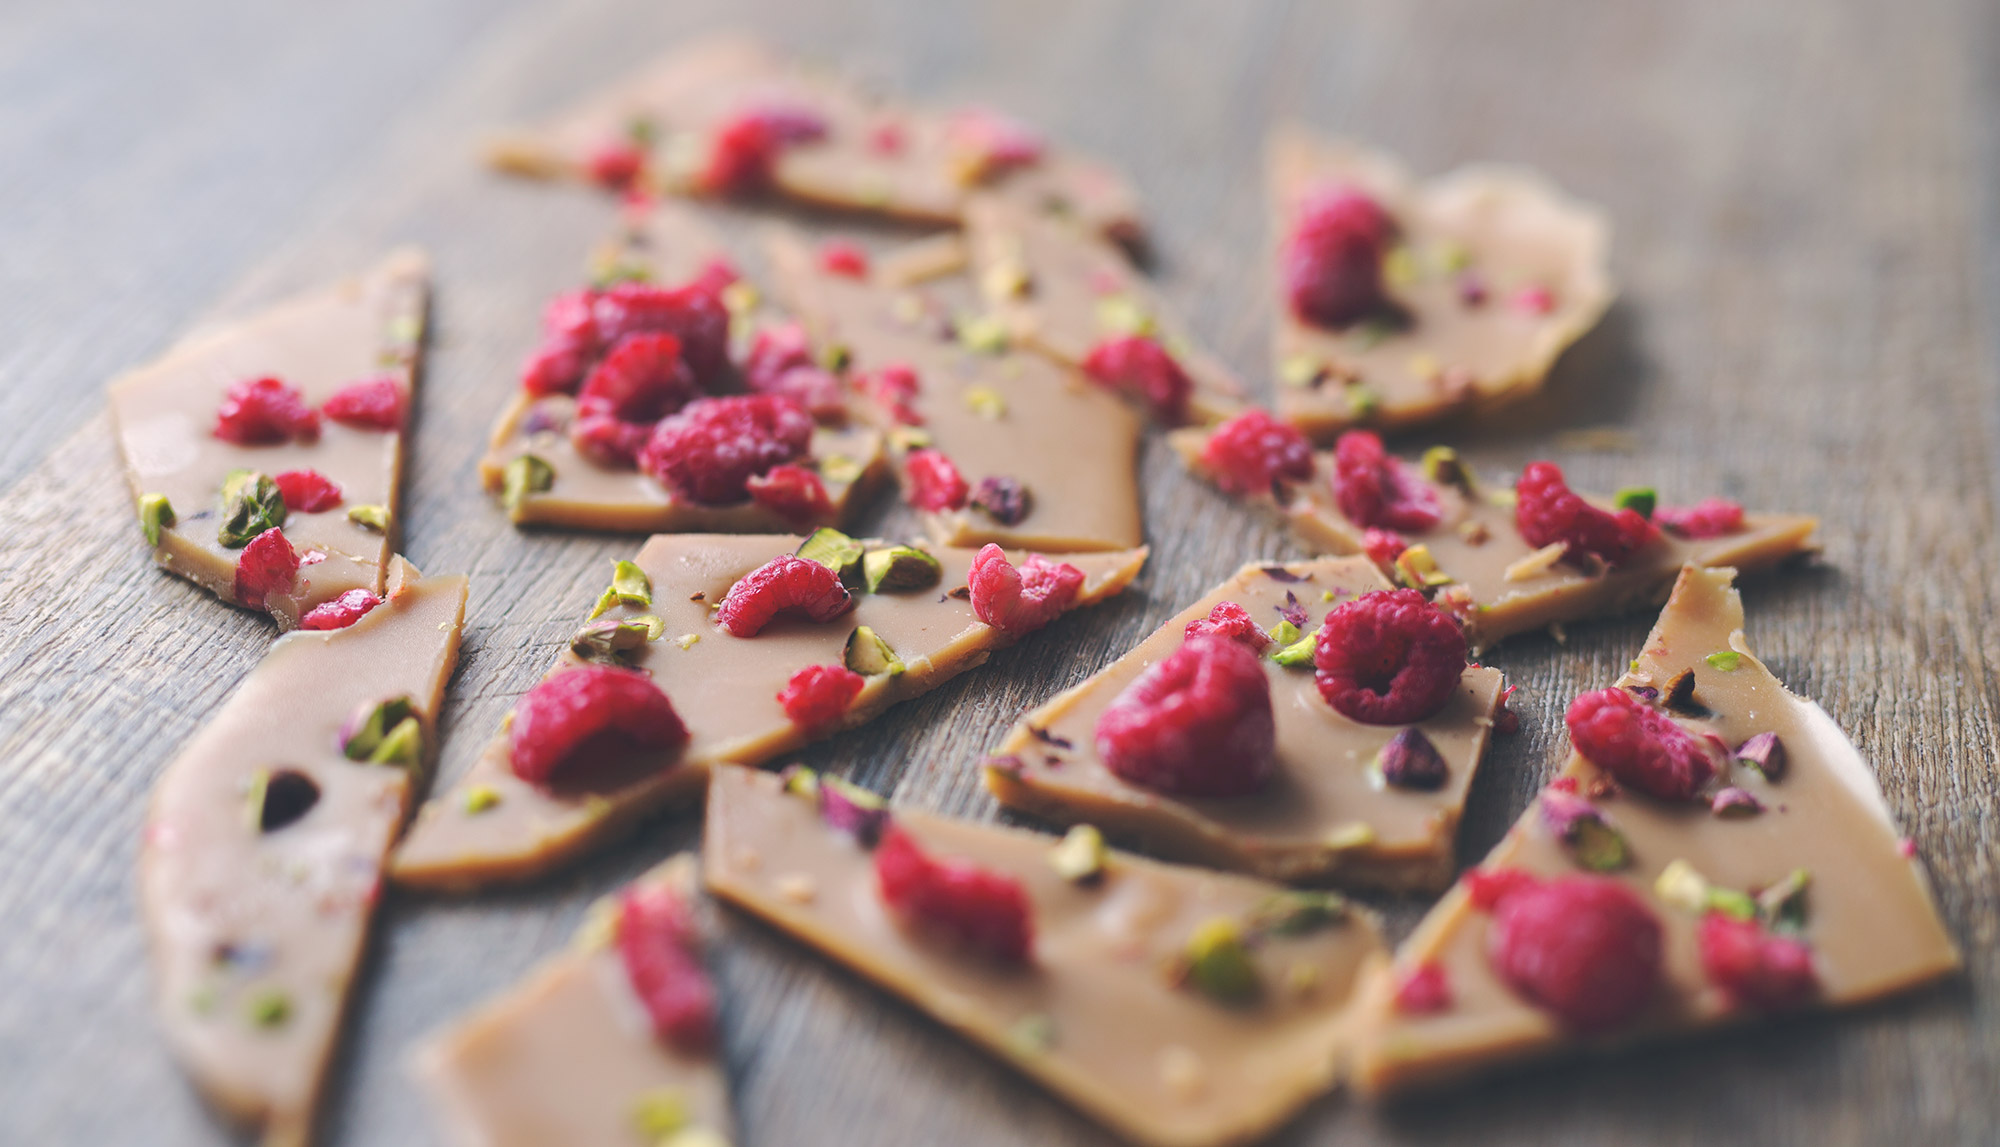 Hazel & Cacao | Rose White Chocolate Bark with Raspberries ...